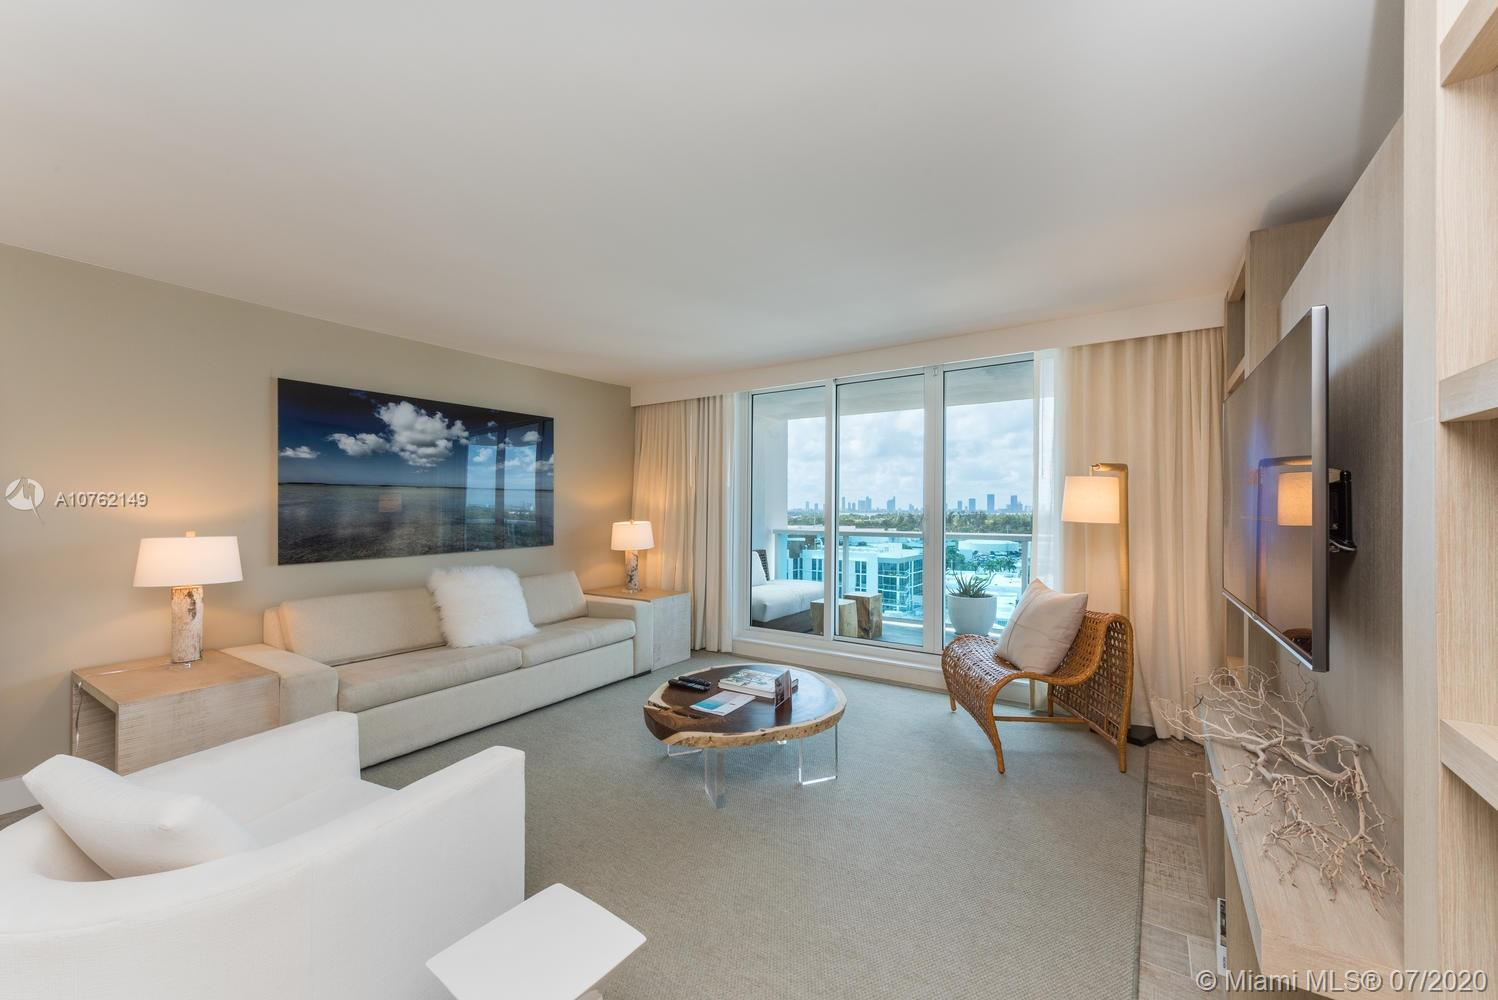 1 Hotel & Homes #1121 - 102 24th St #1121, Miami Beach, FL 33139